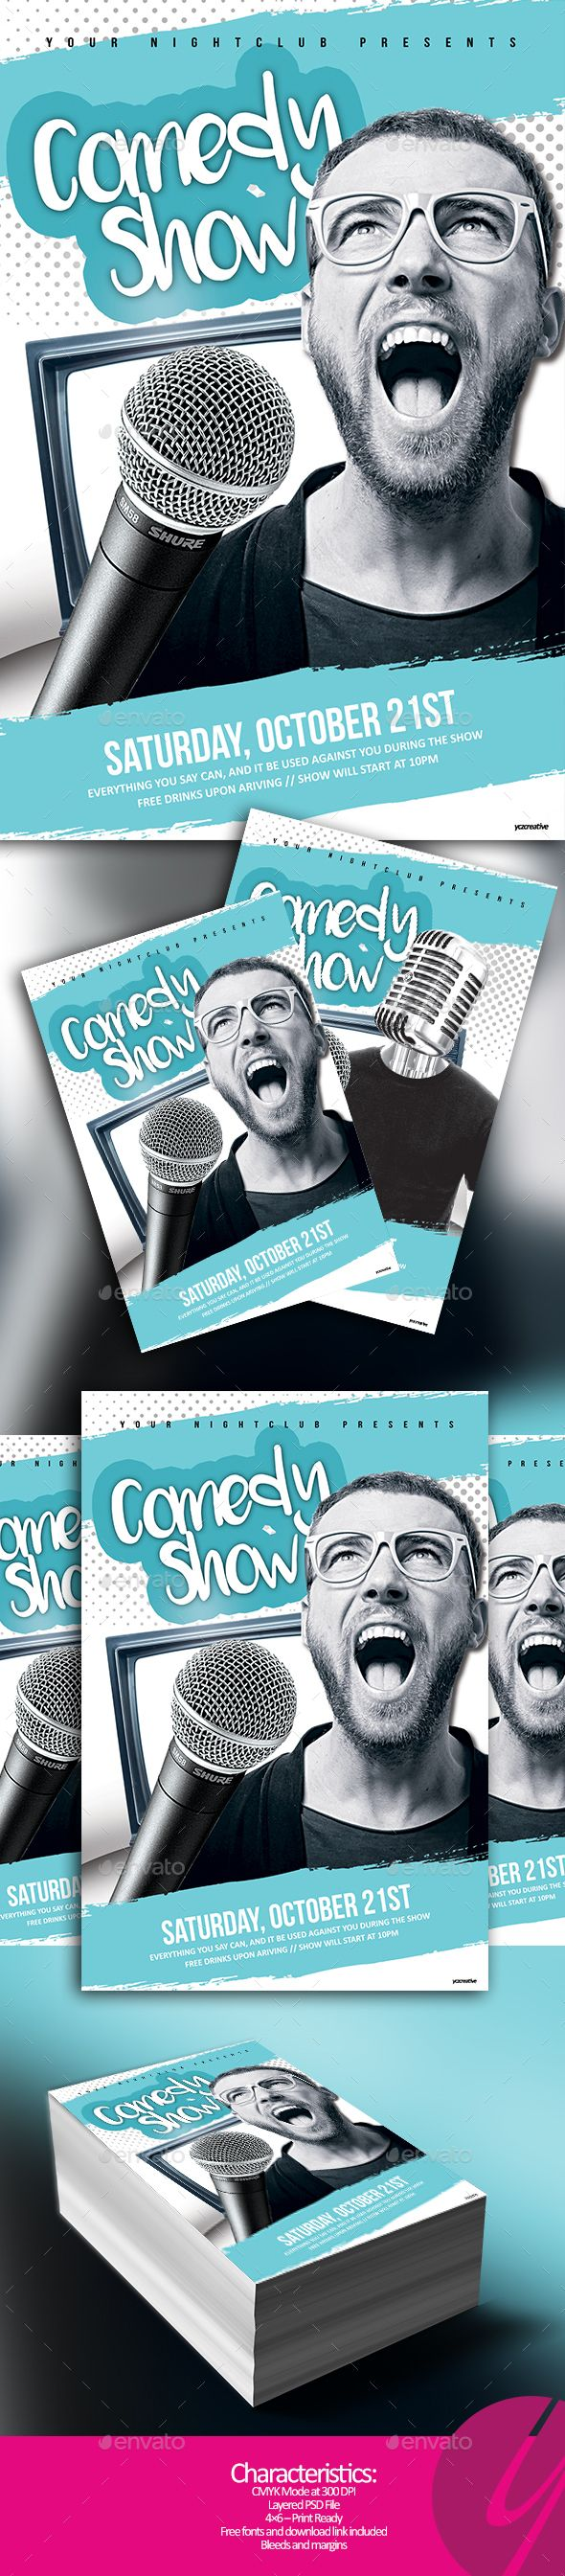 Comedy Show Night  Psd Templates Template And Event Flyers